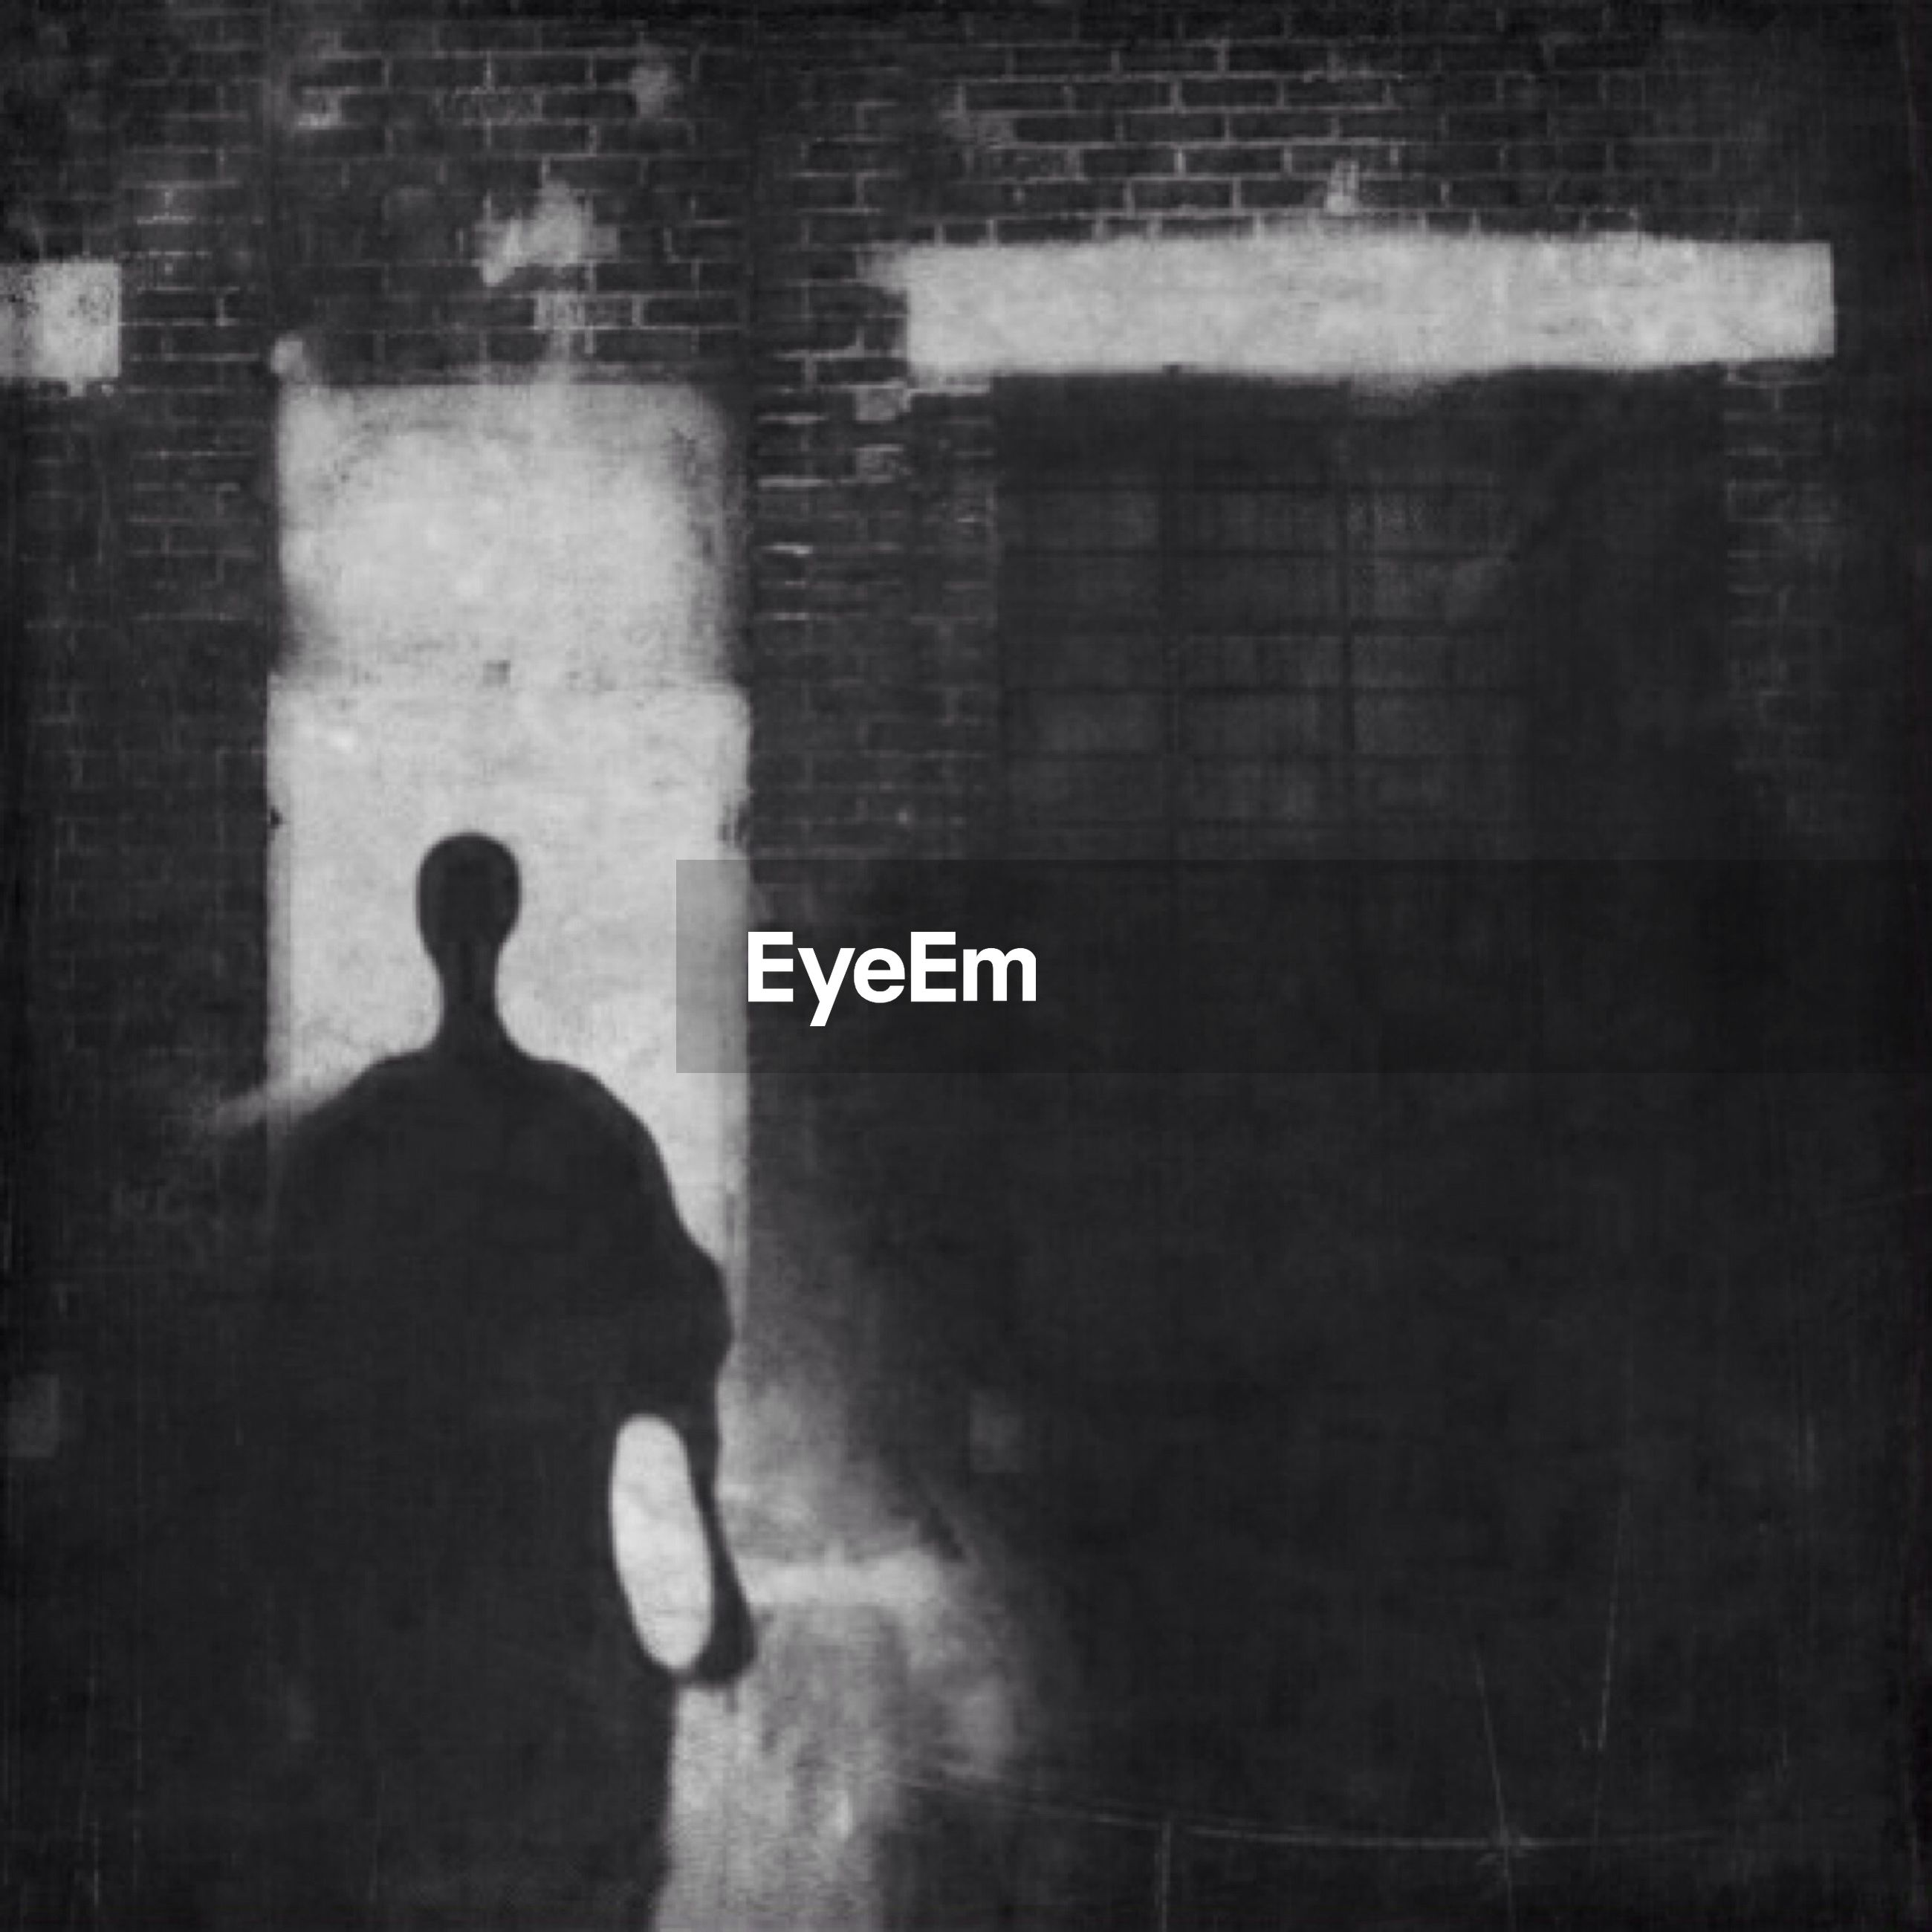 Shadow of person on brick wall